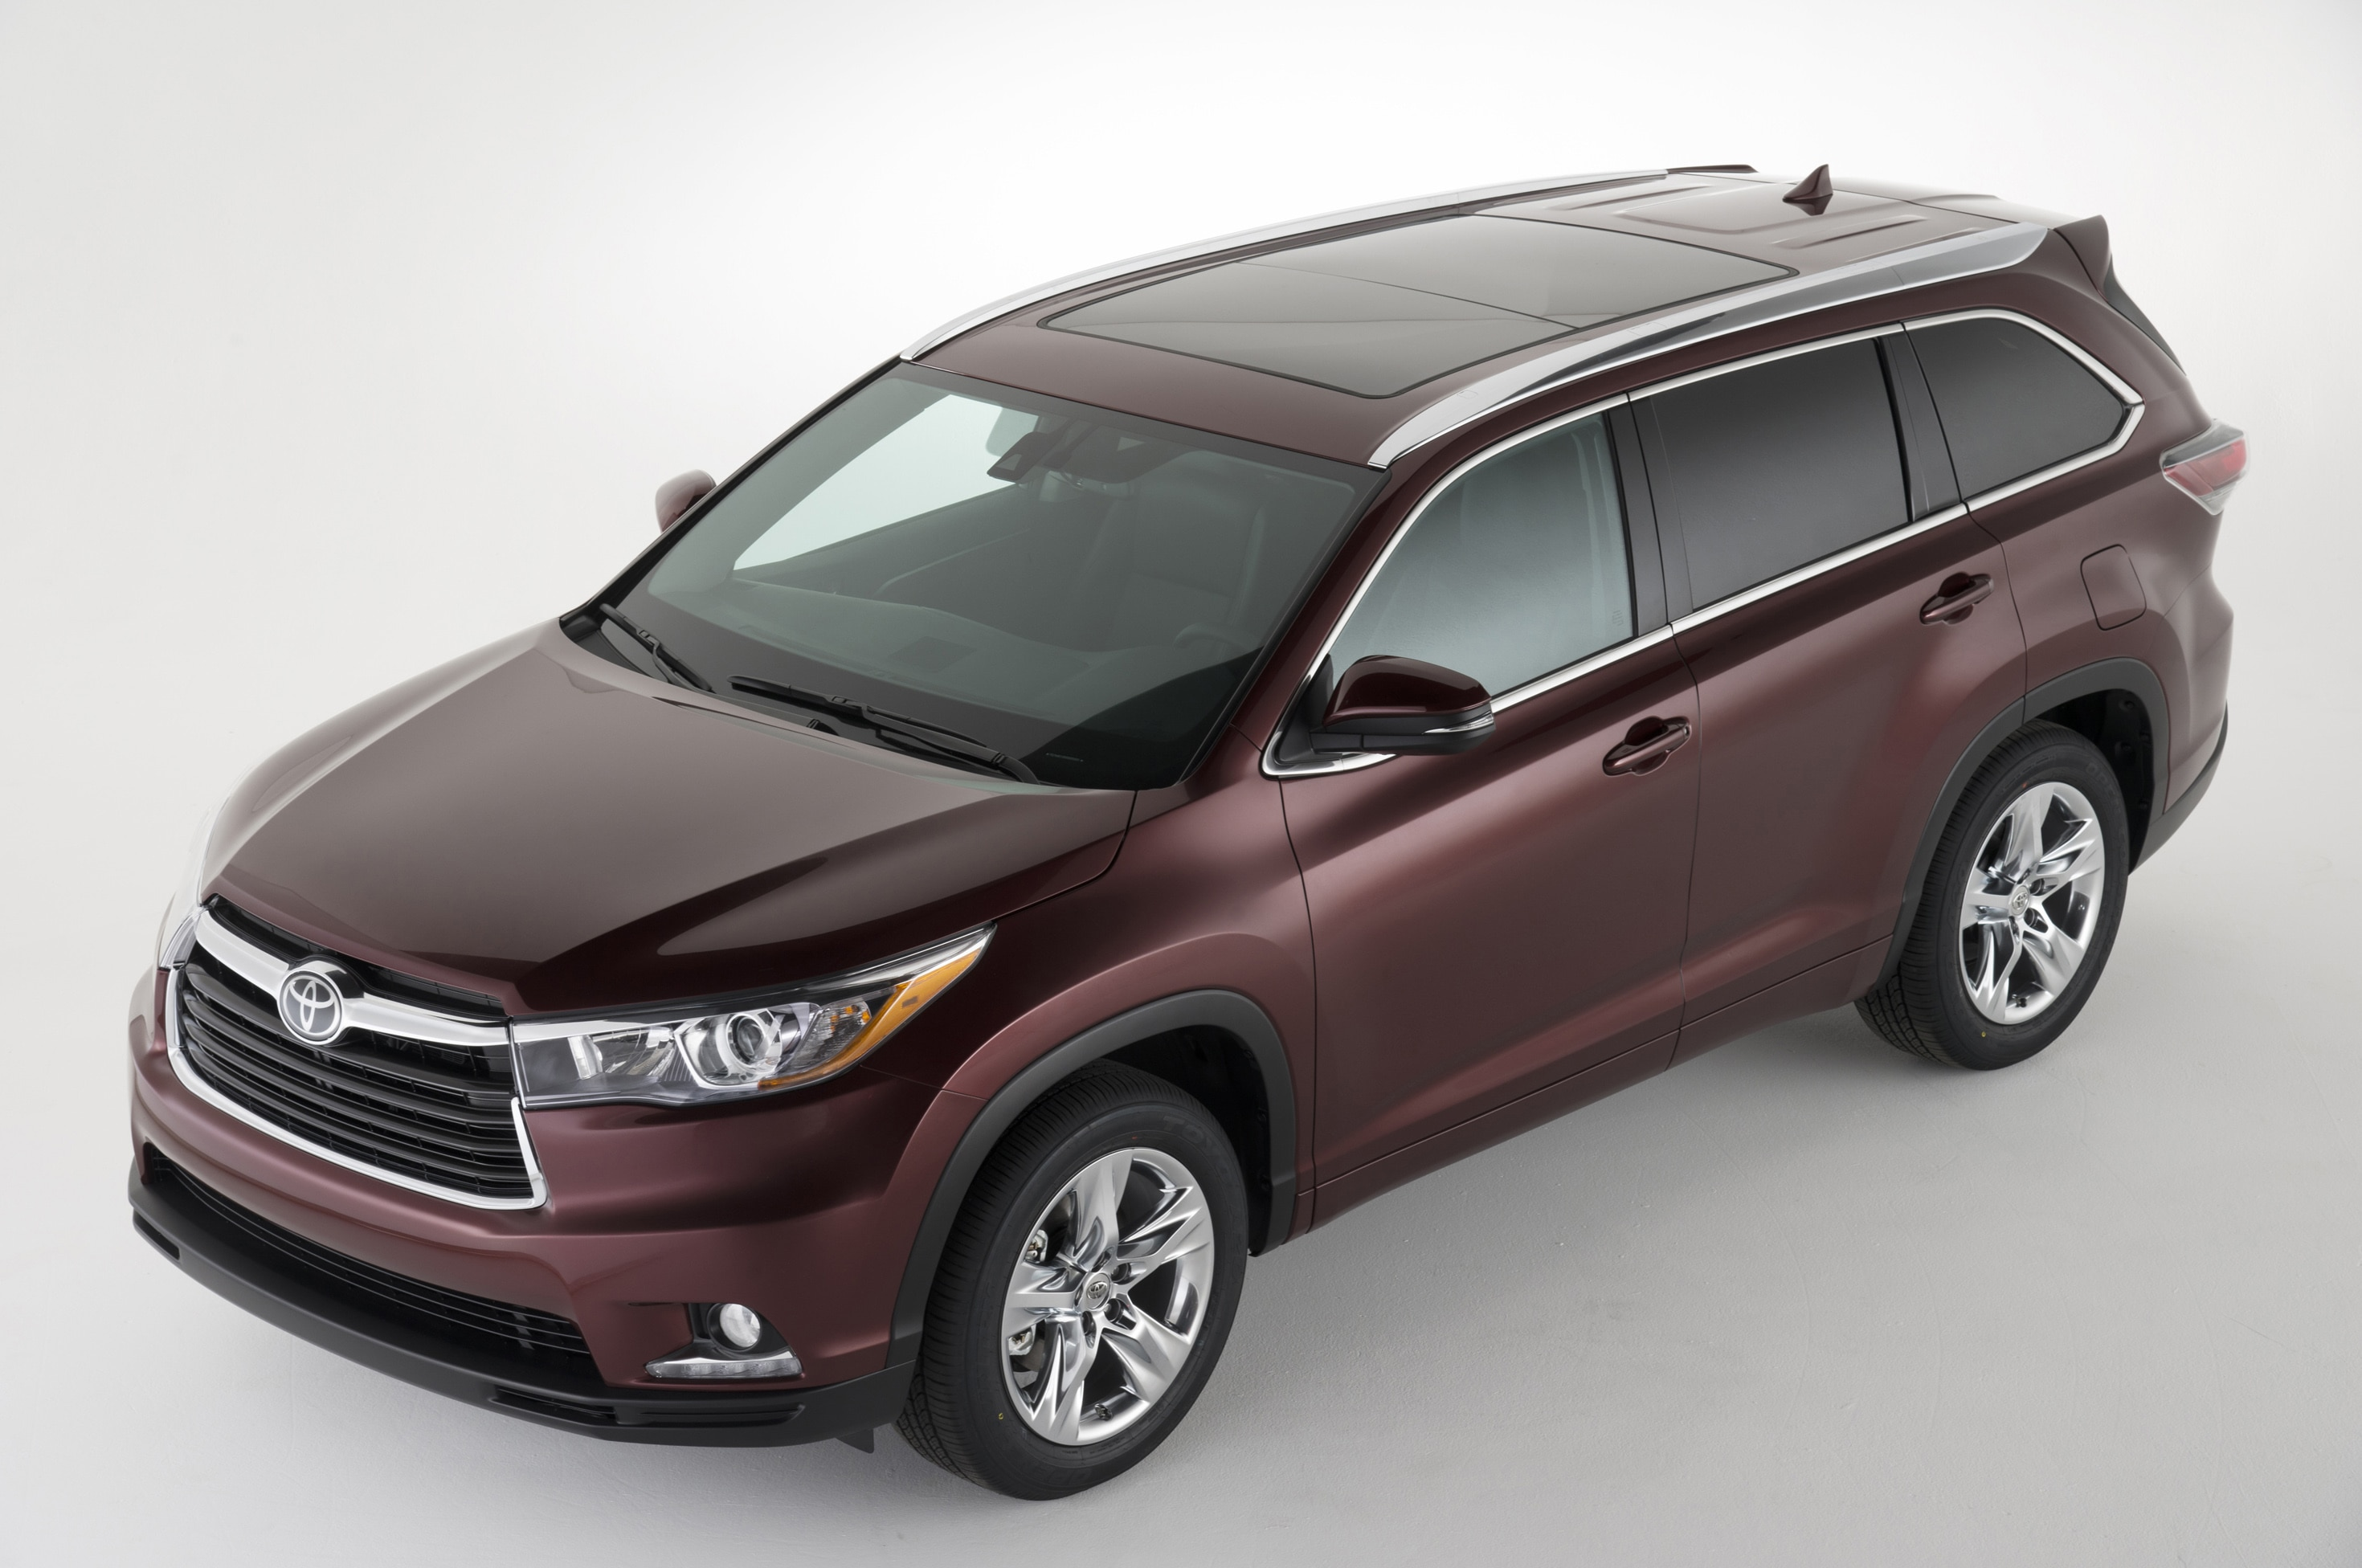 2014 Toyota Highlander Front Three Quarters From Above1